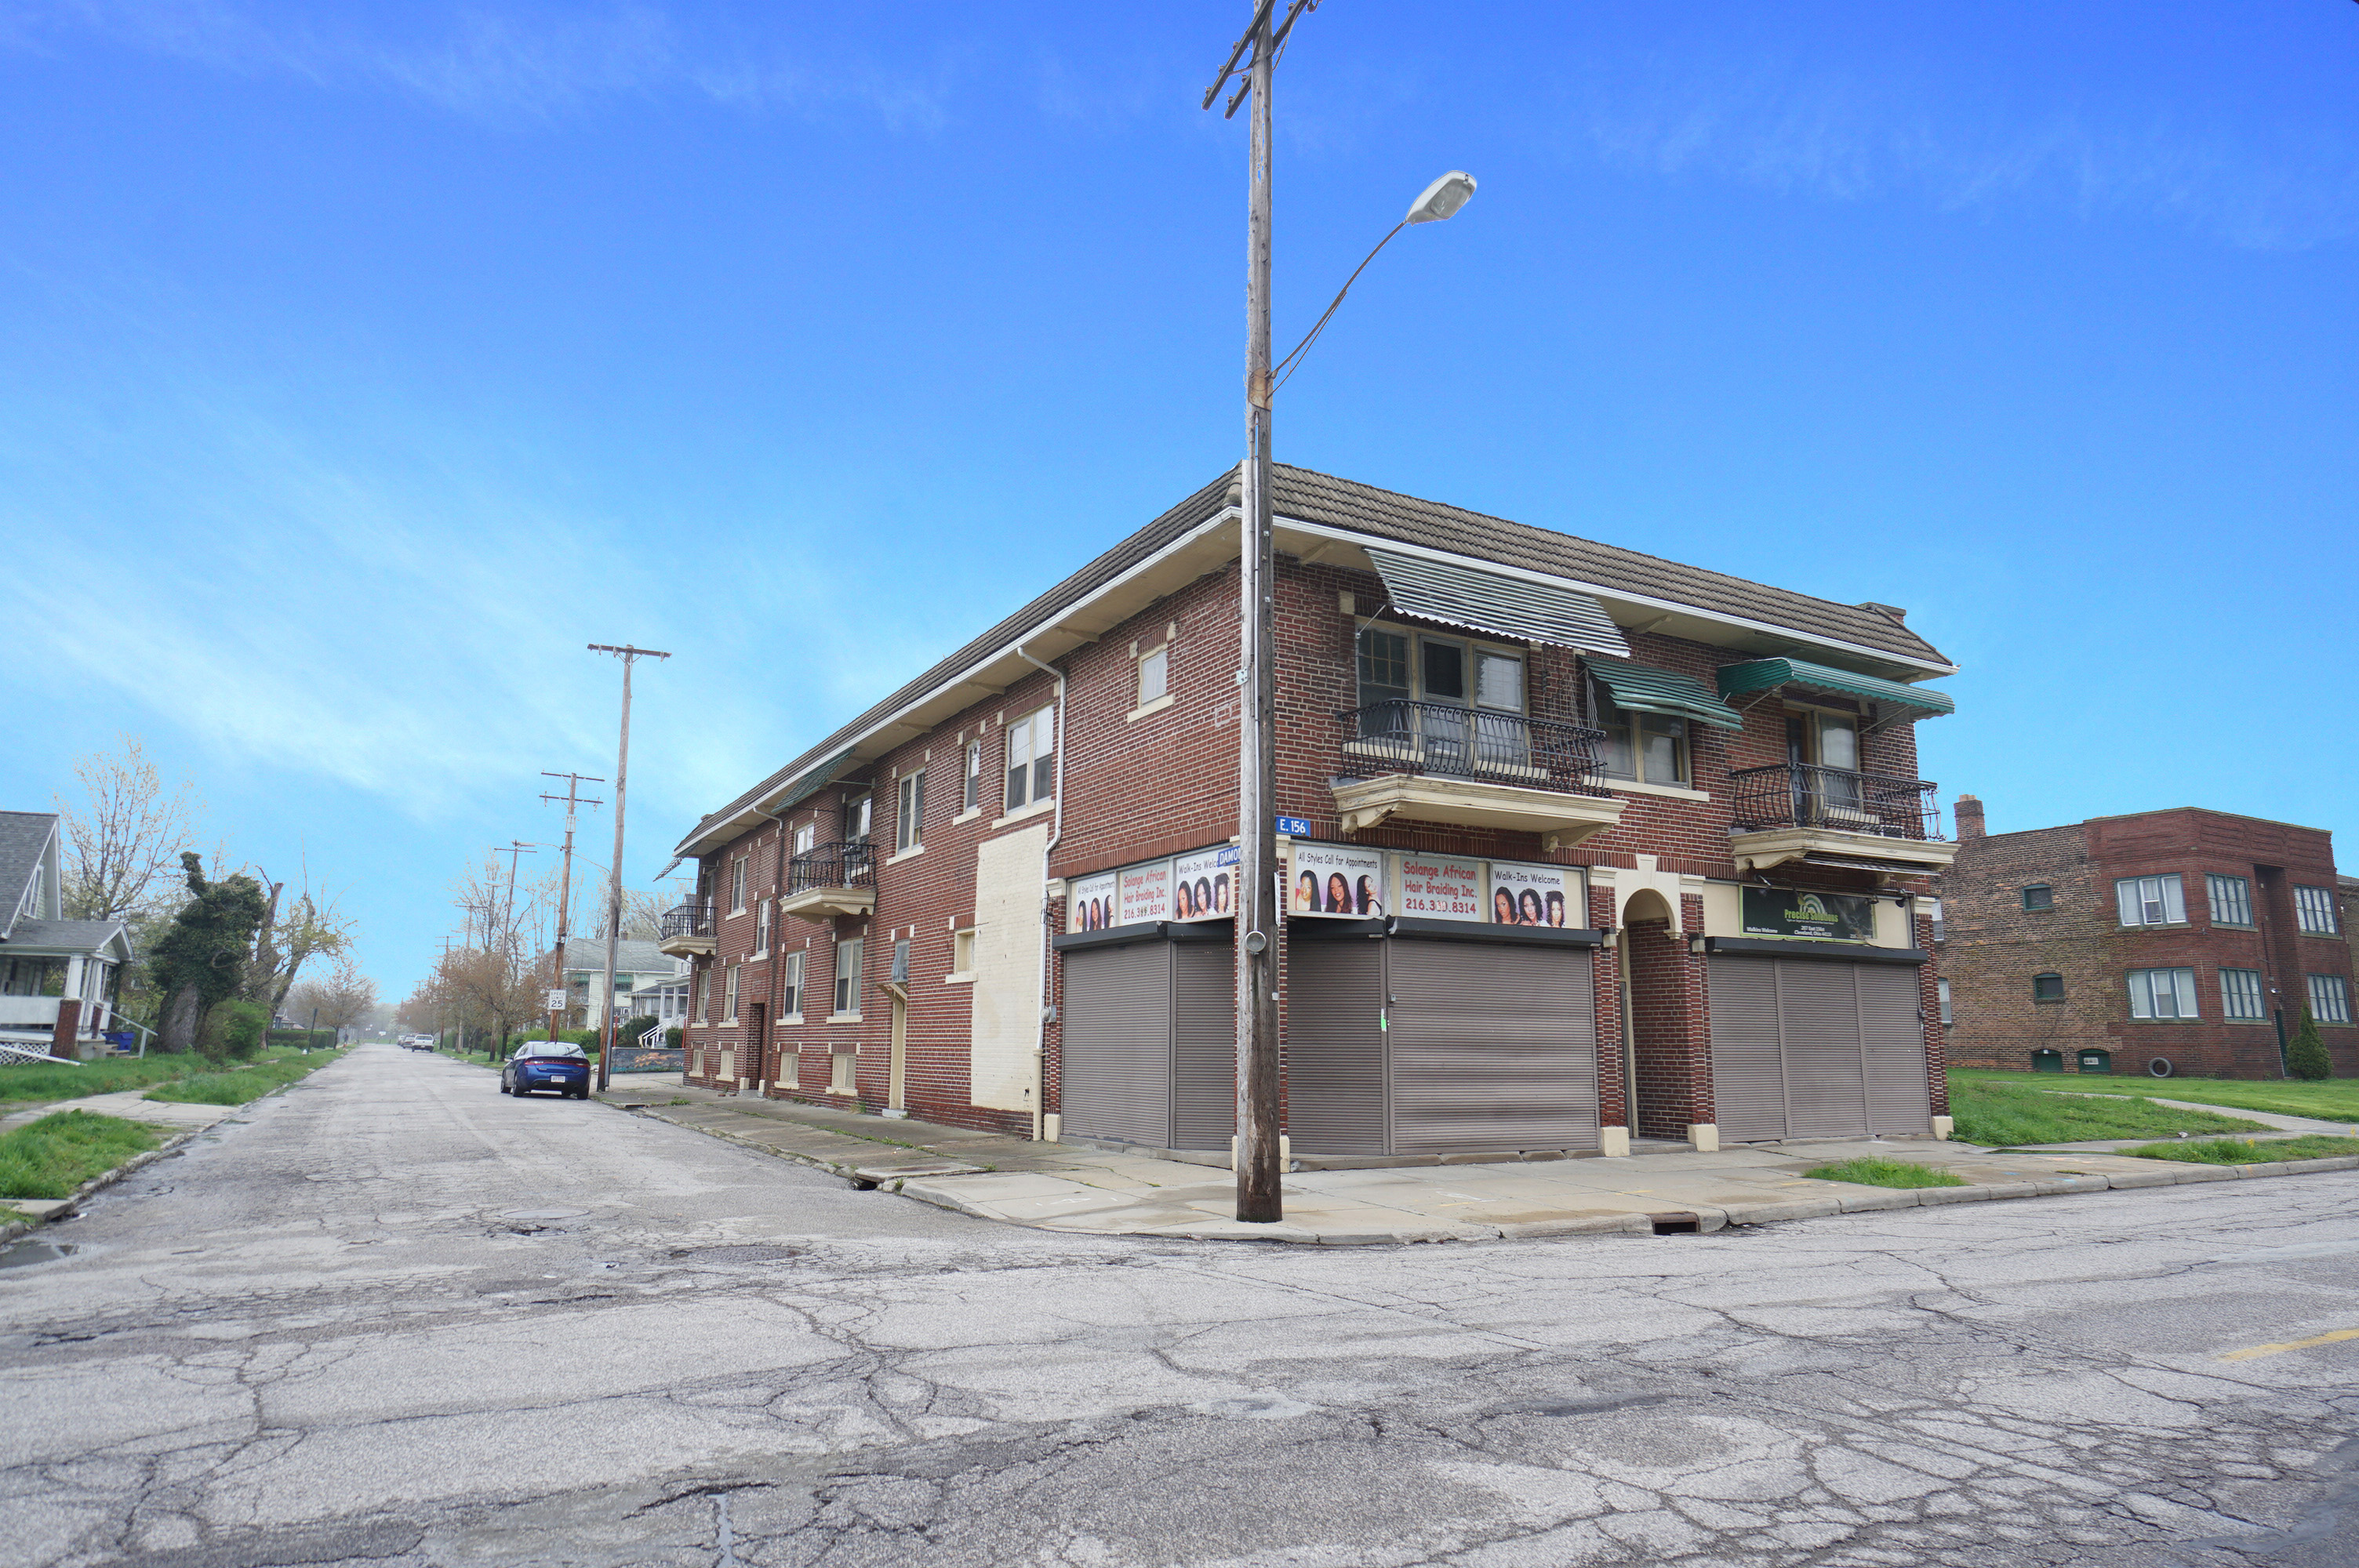 205 E 156th St, Cleveland, OH